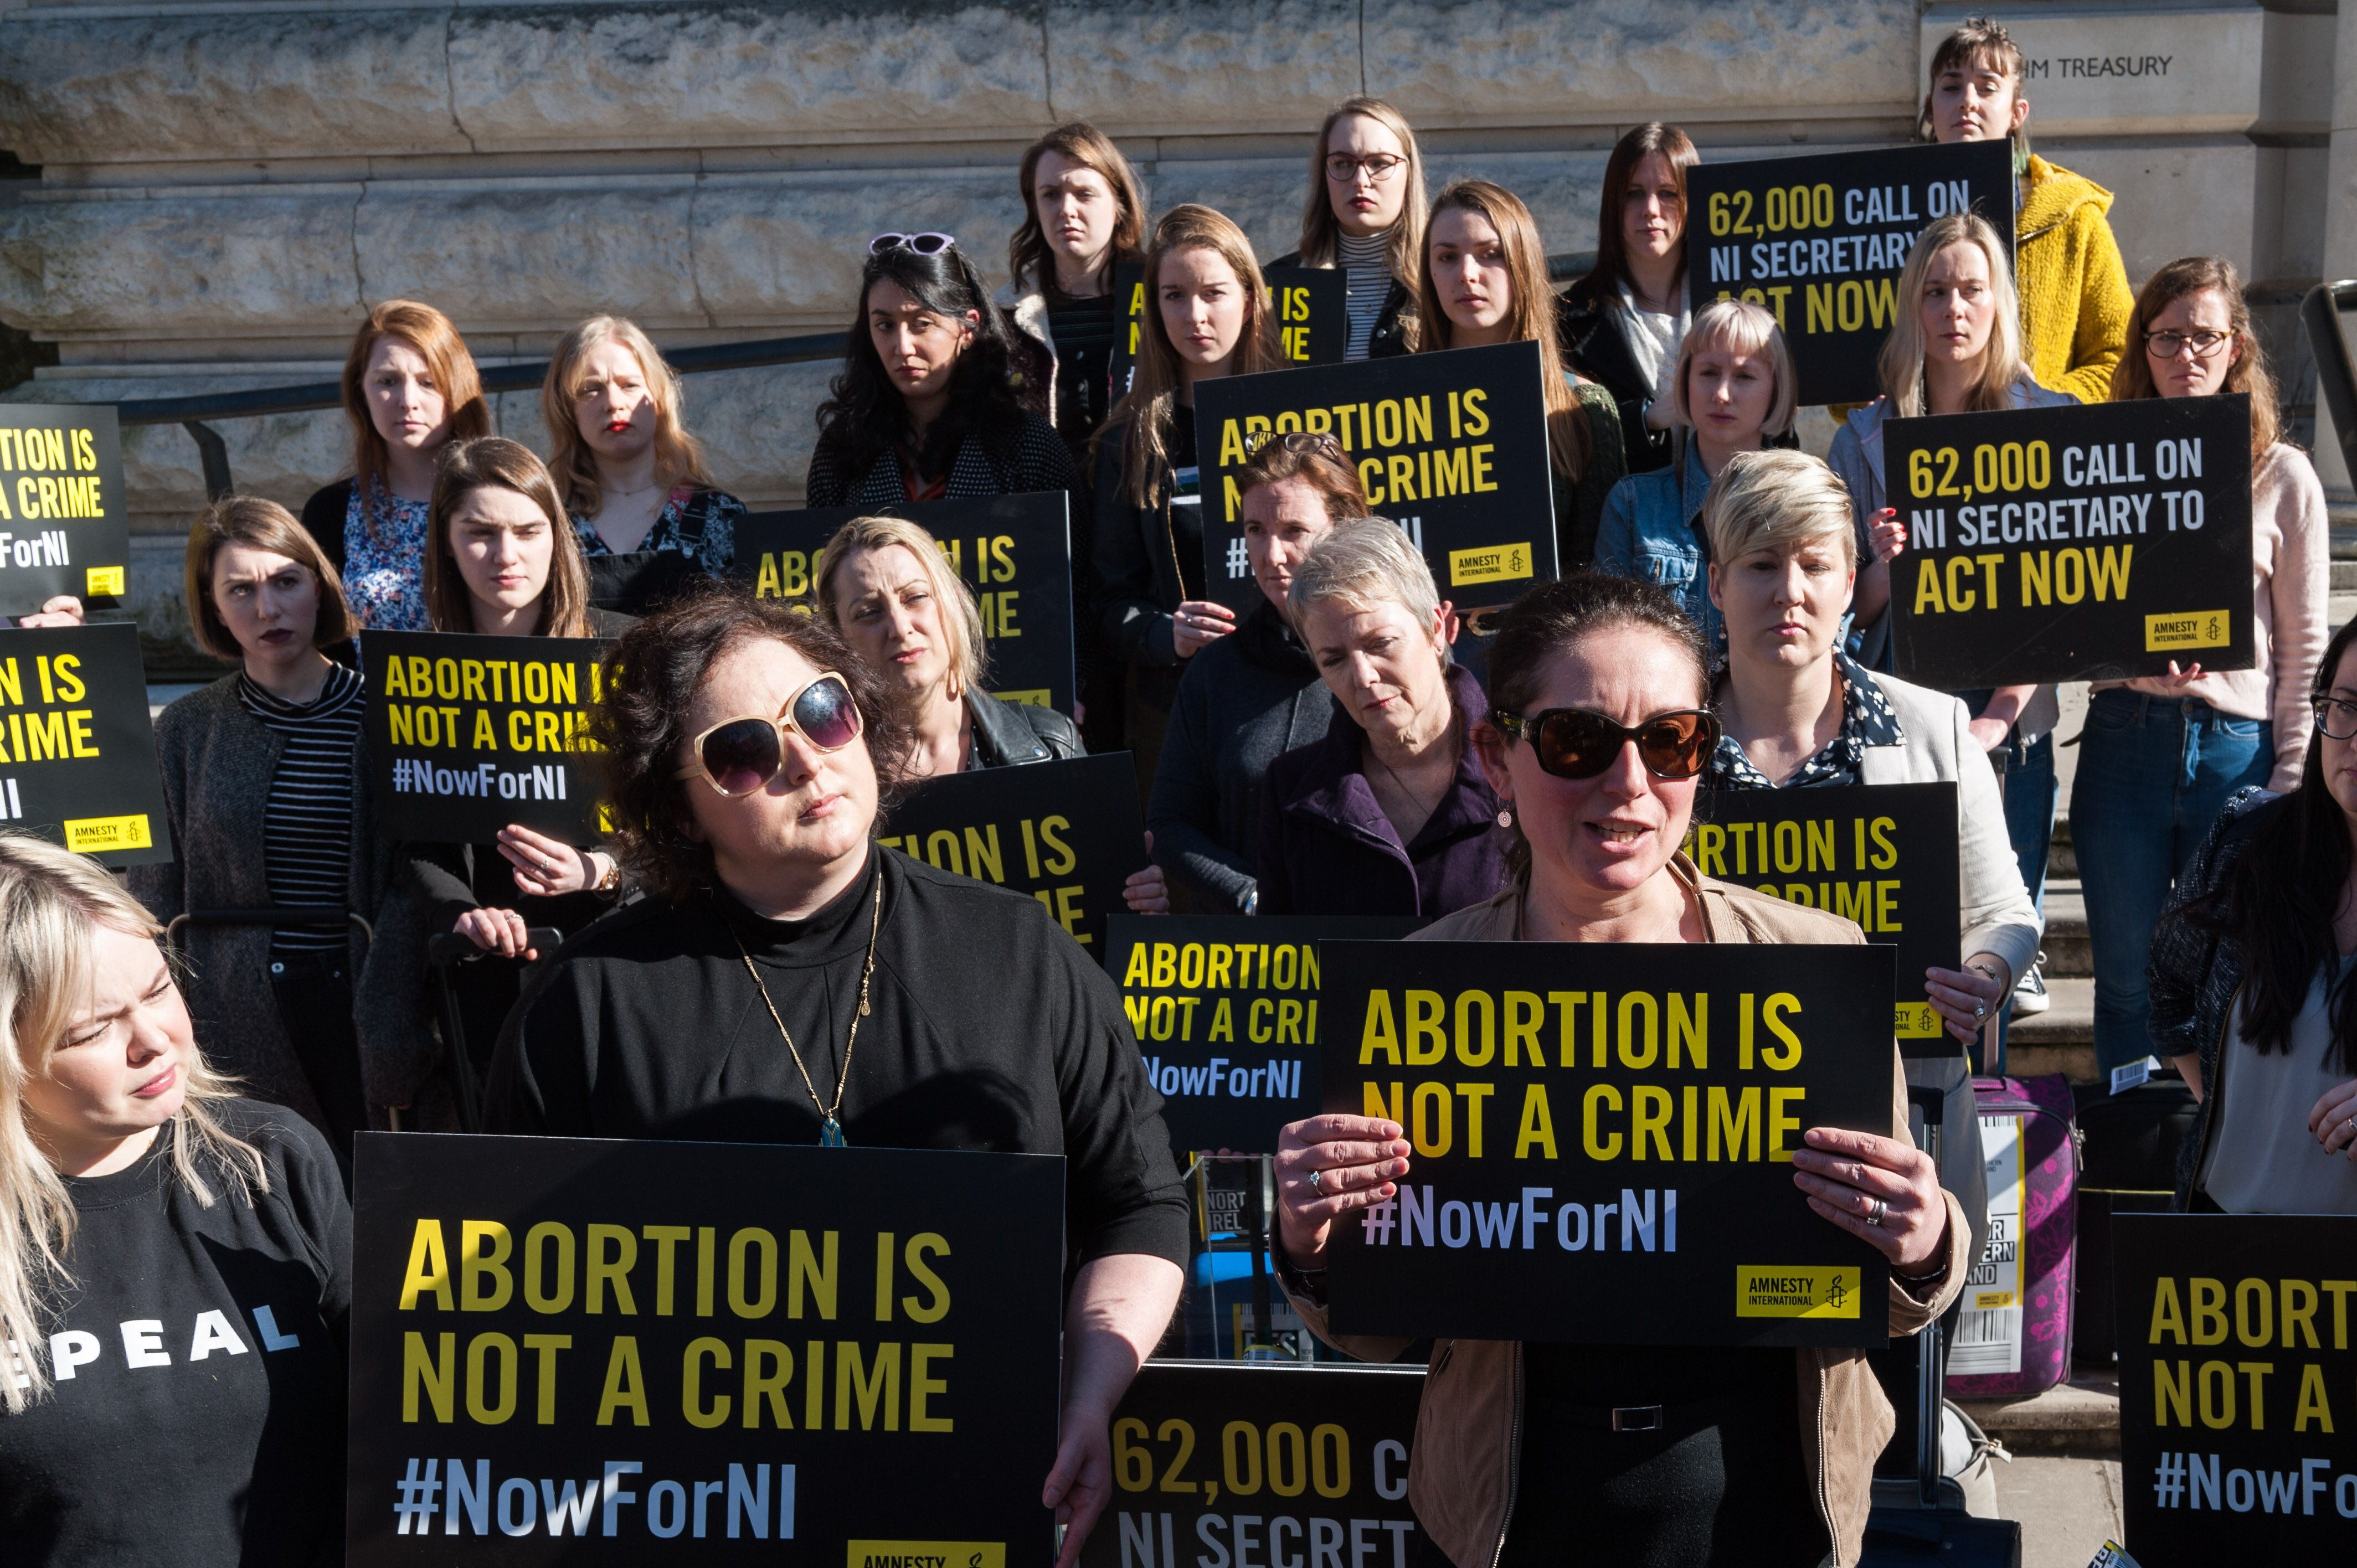 LONDON, UNITED KINGDOM - FEBRUARY 26: A group of 28 pro-choice demonstrators including Derry Girls cast, Nicola Coughlan (1L) and Siobhan McSweeney (2L), who represent the number of women who travel from Northern Ireland for an abortion each week protest outside Westminsters Northern Ireland Office. Demonstrators delivered a petition signed by 62,000 people calling for decriminalisation of abortion in the region. February 26, 2019 in London, England. (Photo credit should read Wiktor Szymanowicz / Barcroft Media via Getty Images)